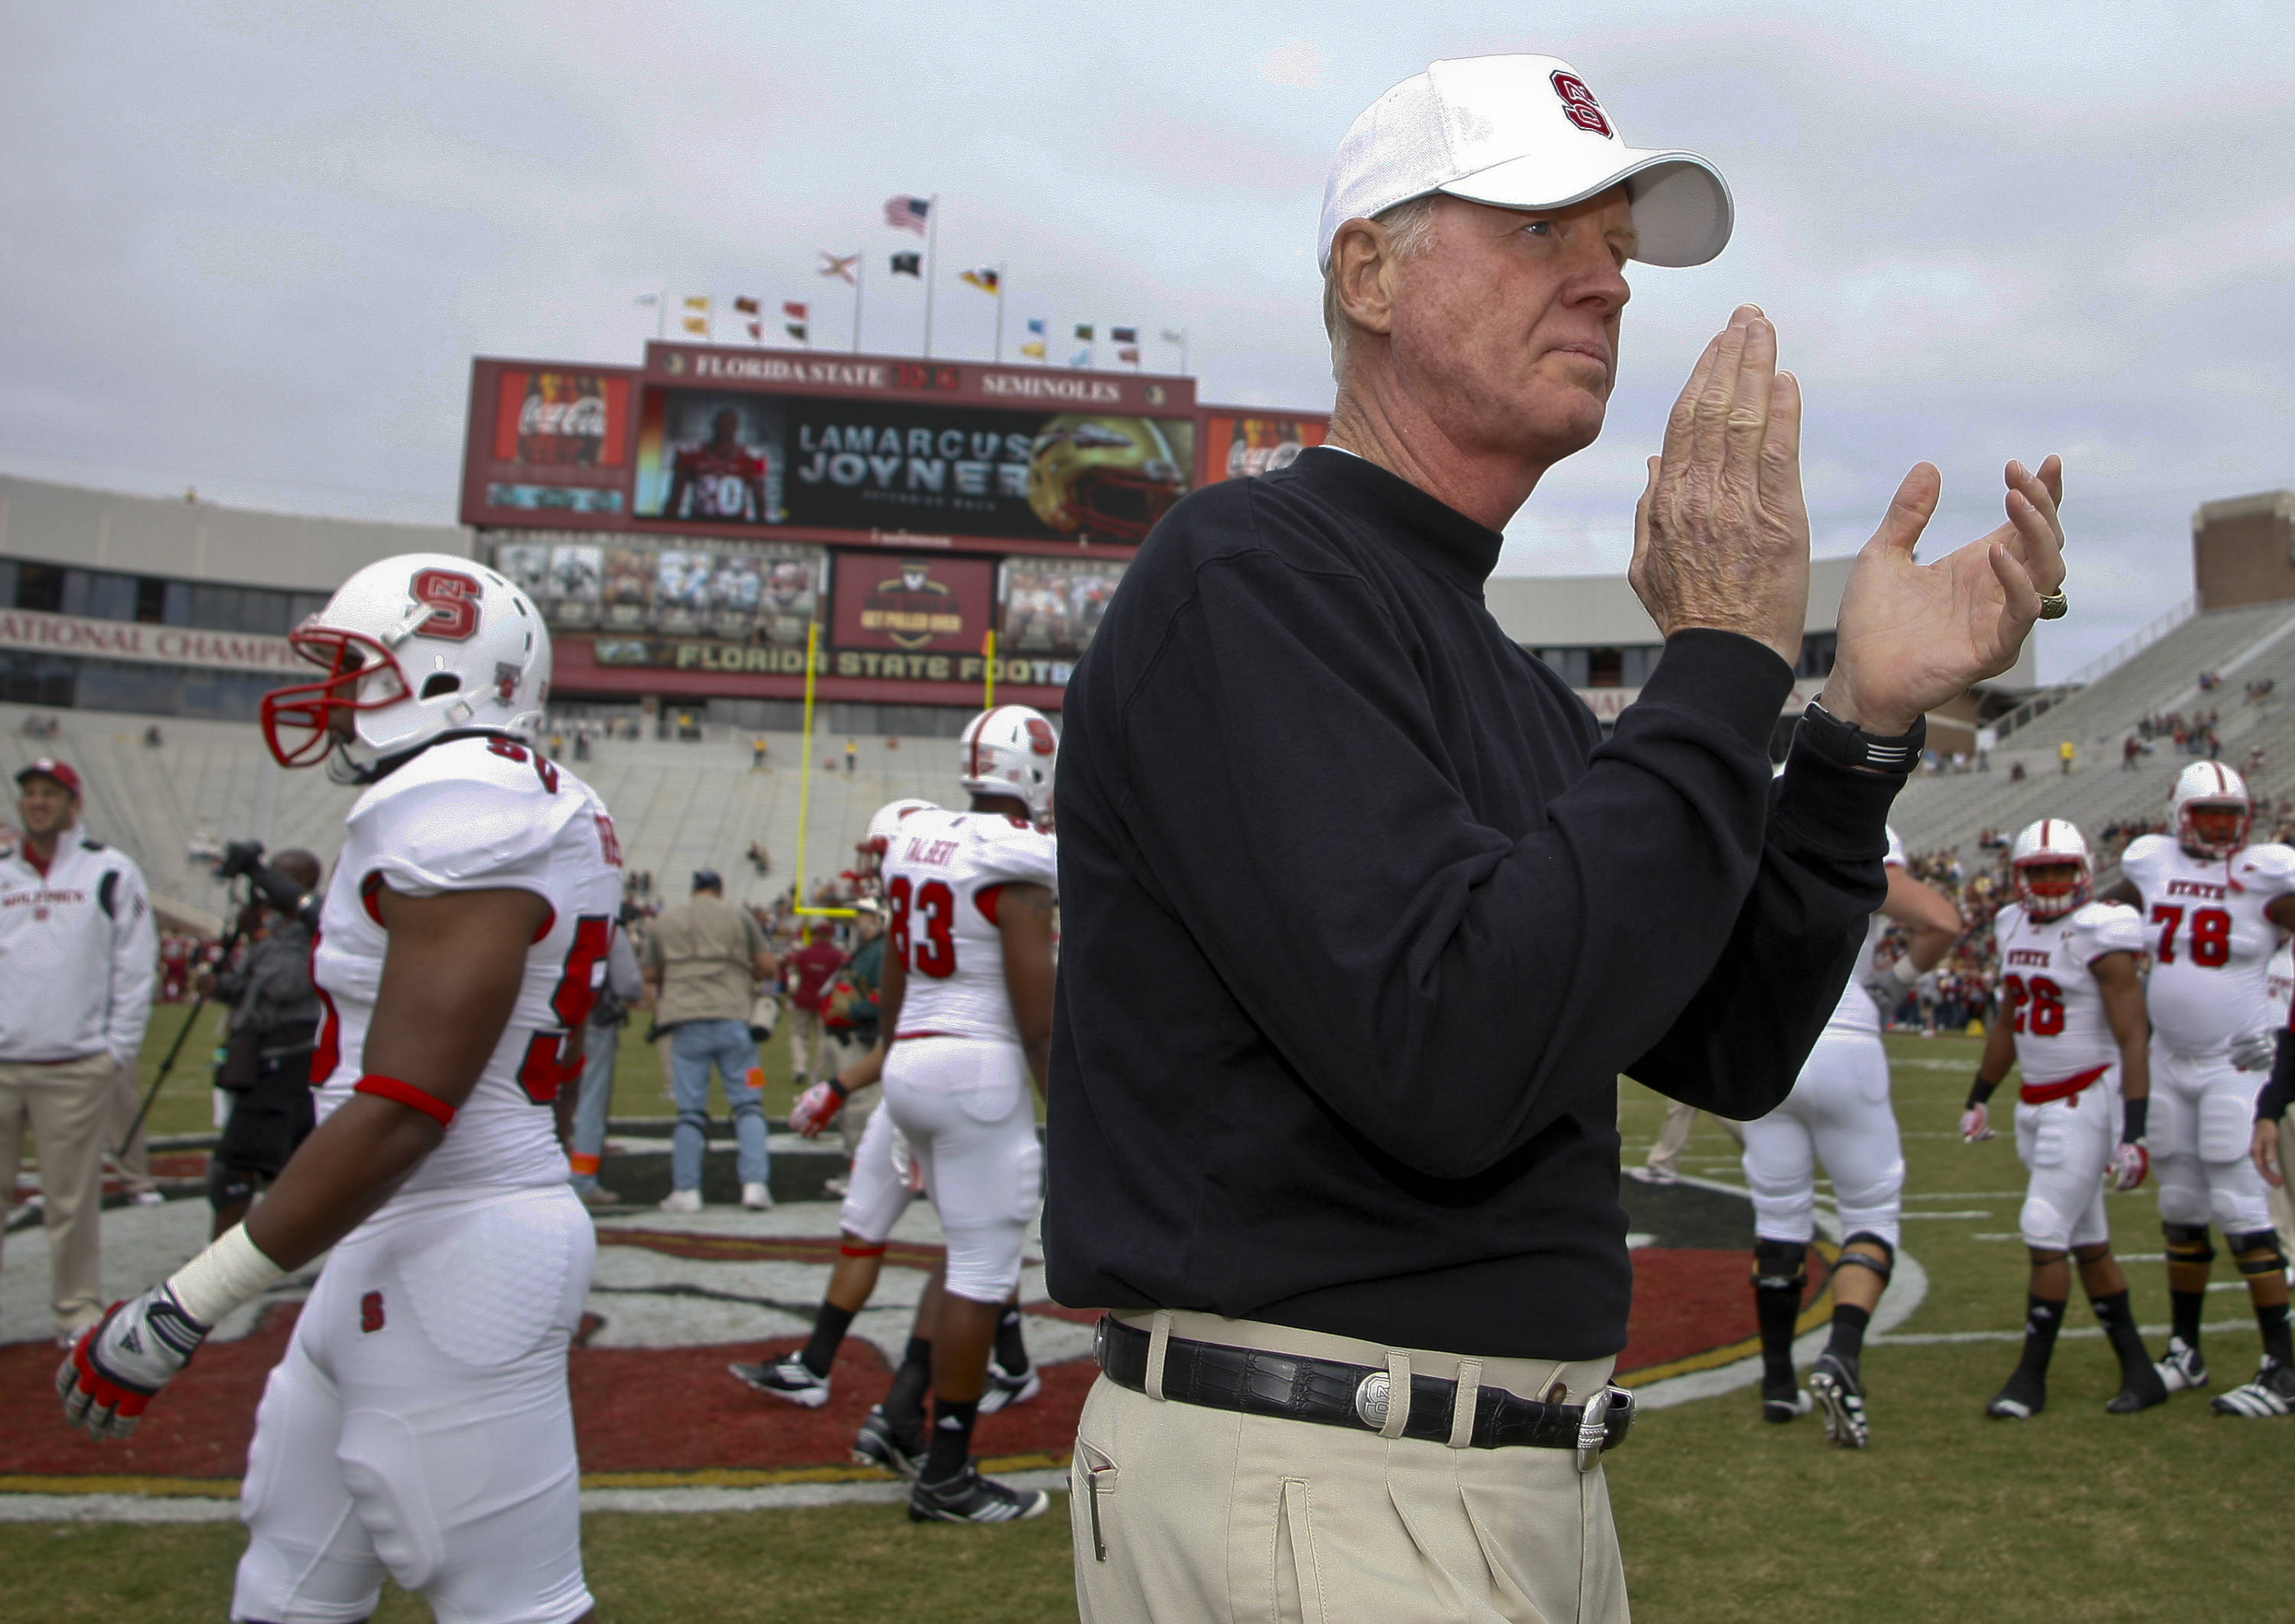 North Carolina State coach Tom O'Brien gets his team ready for an NCAA college football game against Florida State at Doak Campbell Stadium in Tallahassee, Fla., Saturday, Oct. 29, 2011. (AP Photo/Phil Sears)